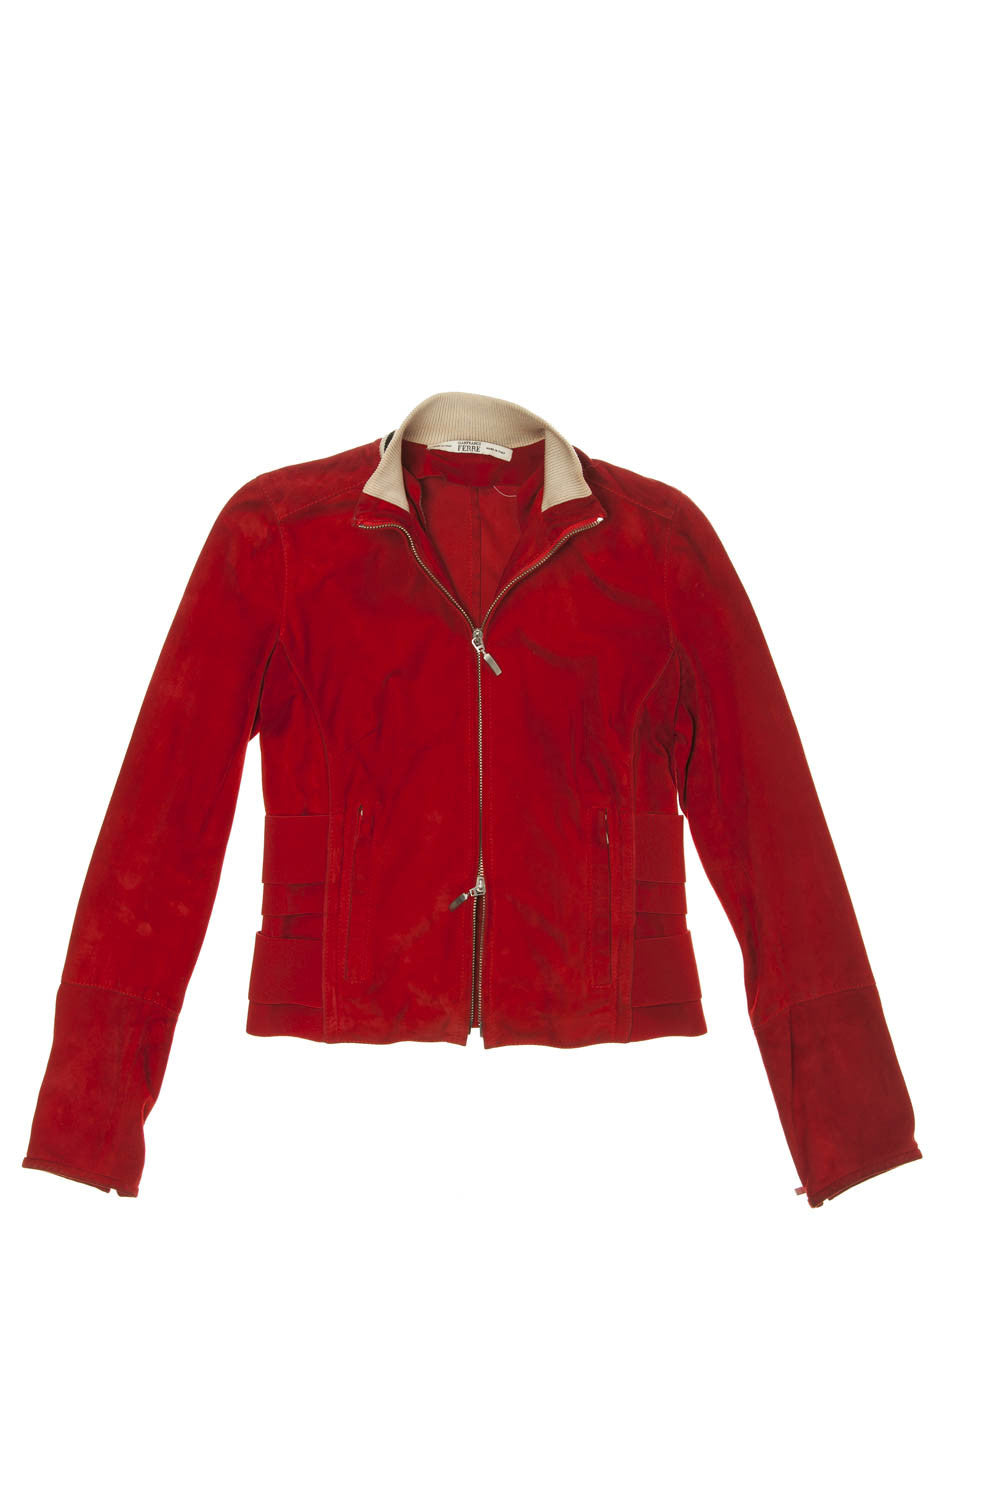 Gianfranco Ferre - Red Suede Zip Up Jacket - IT 42